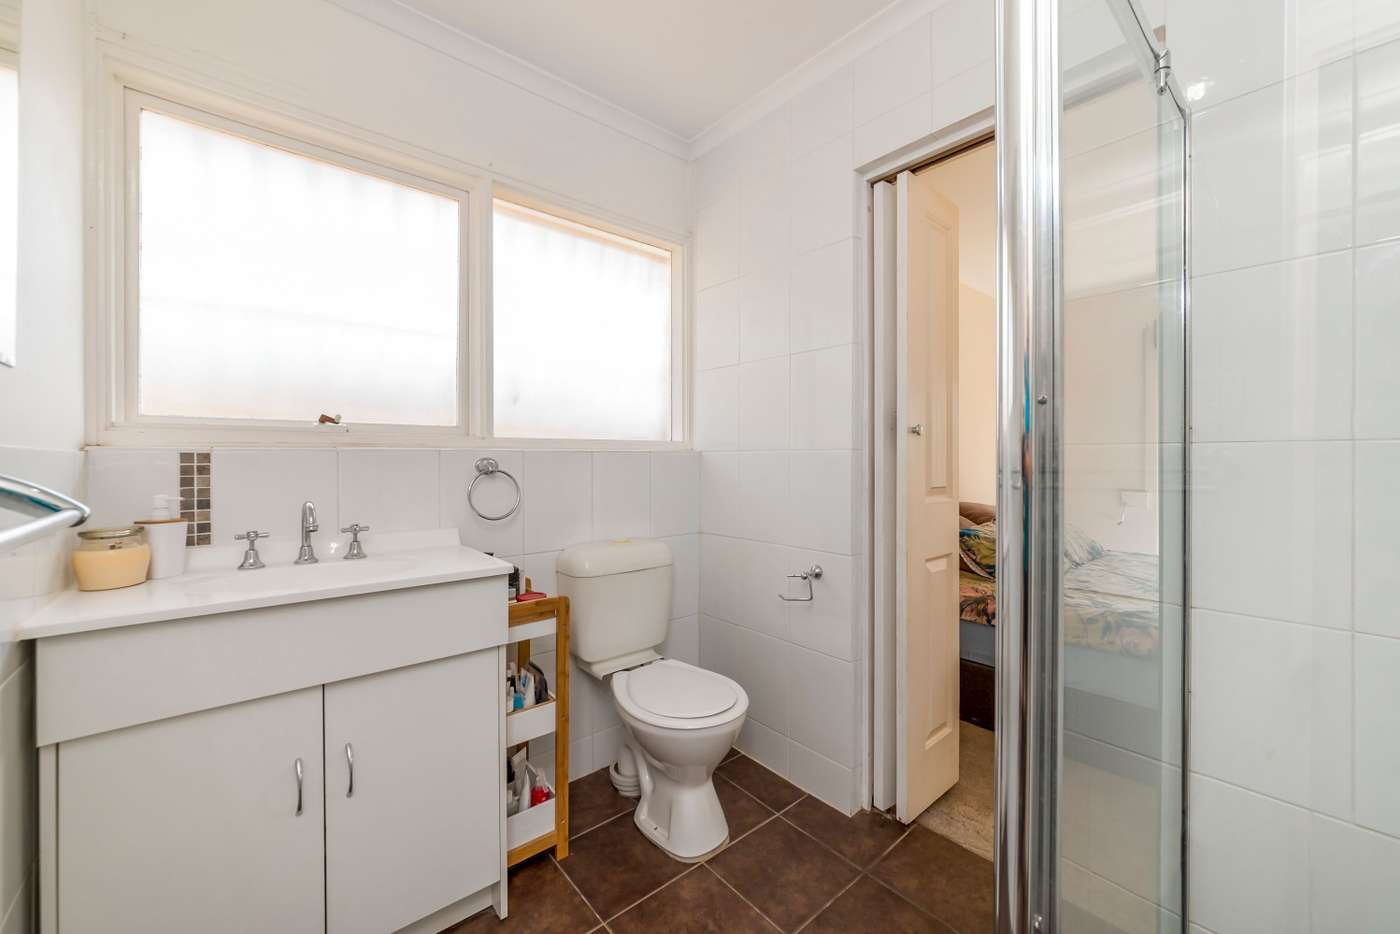 Fifth view of Homely house listing, 7 Rosewall Avenue, Gulfview Heights SA 5096